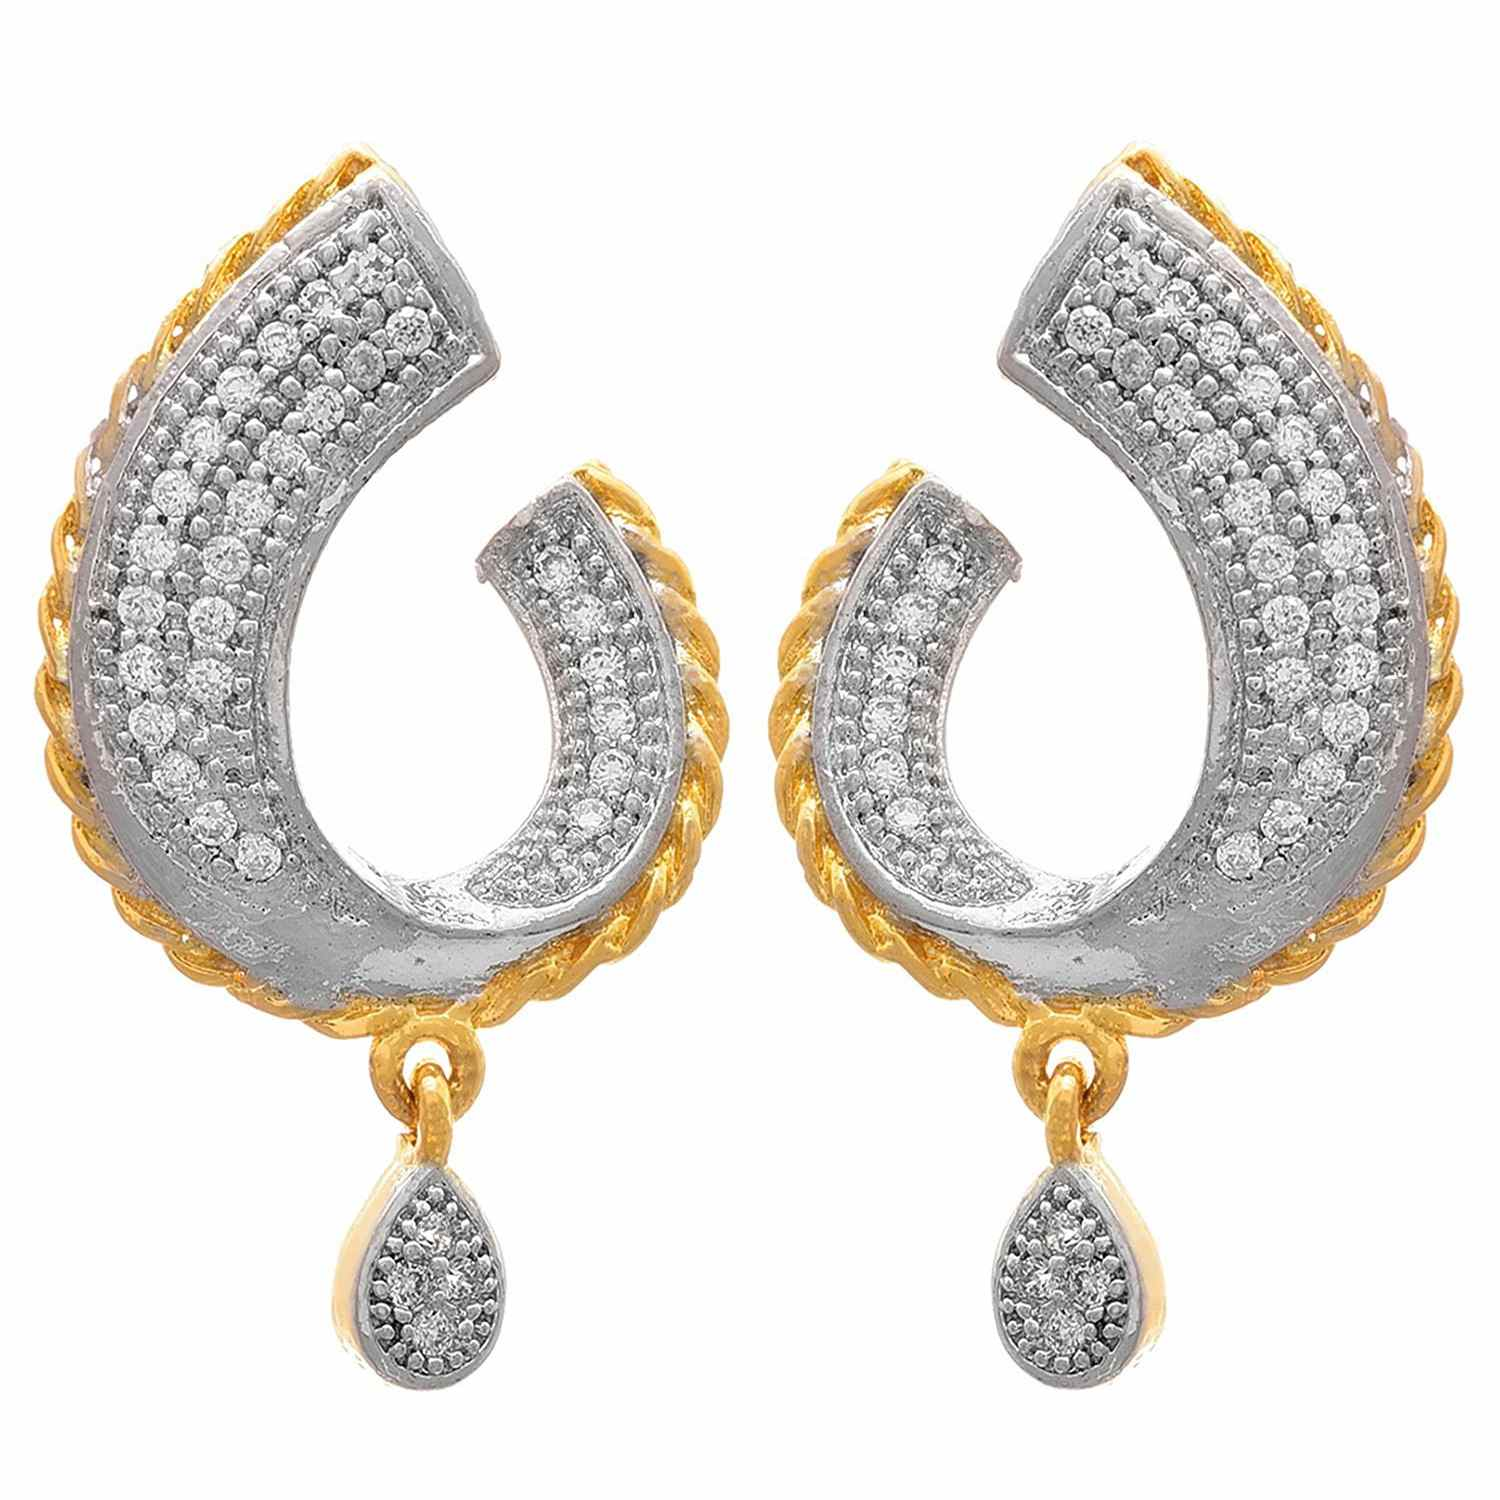 JFL - Fusion Ethnic One Gram Gold Plated Cz American Diamonds Designer Earrings for Women & Girls.